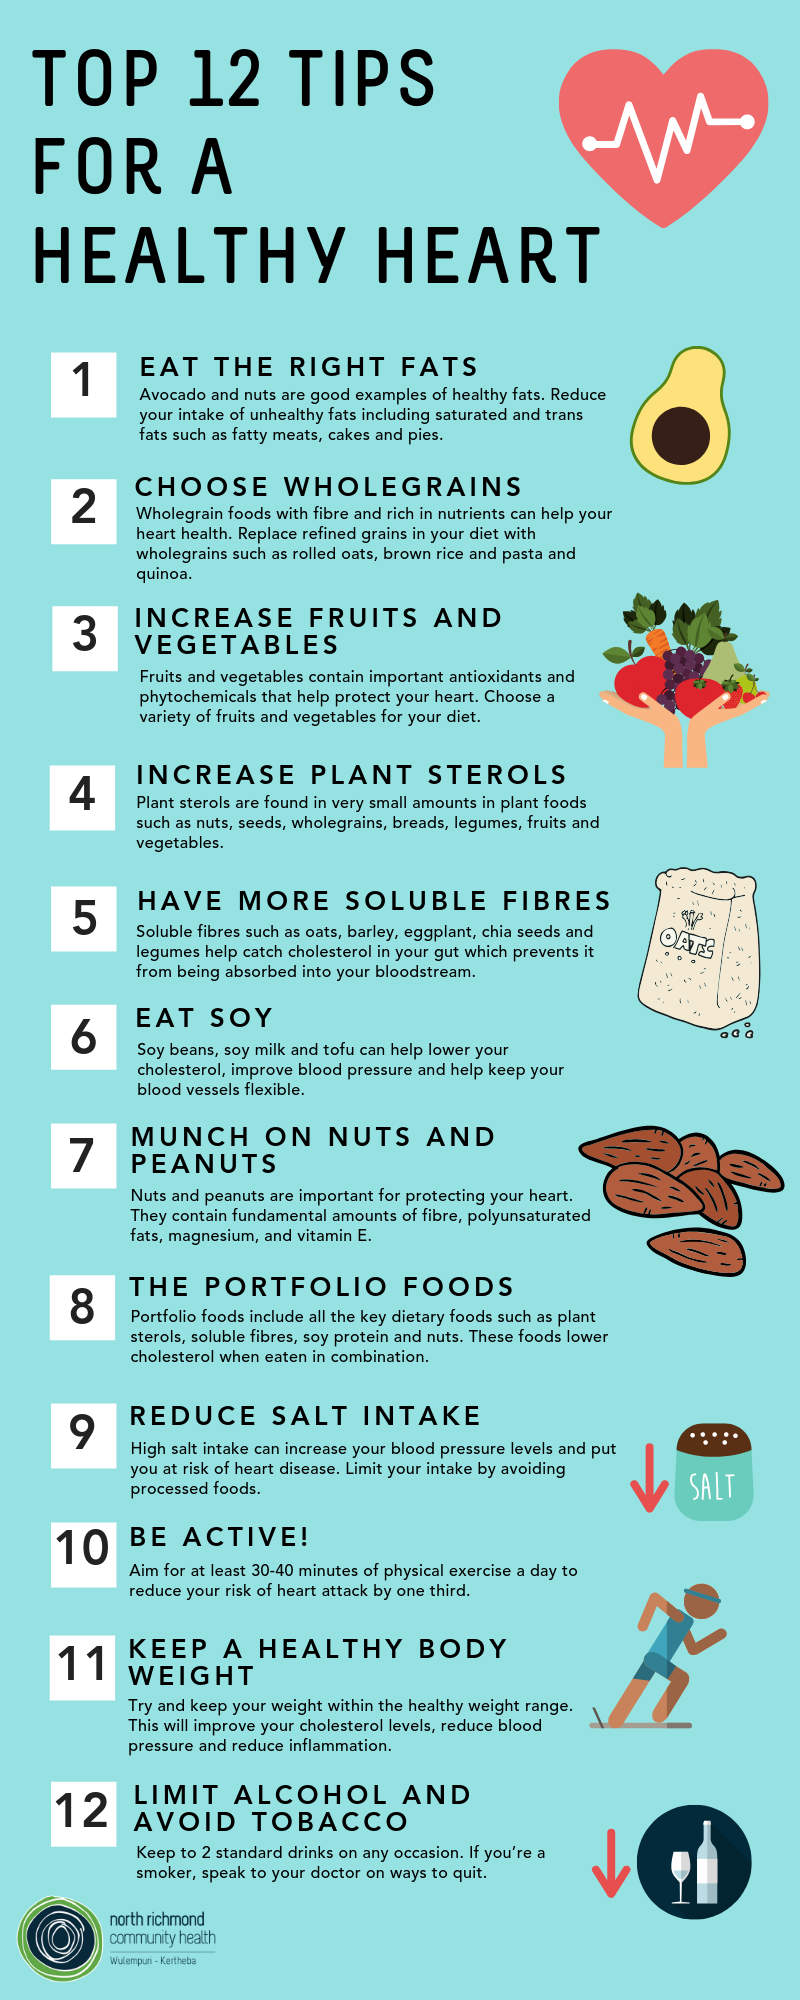 Top 12 Tips for a healthy heart